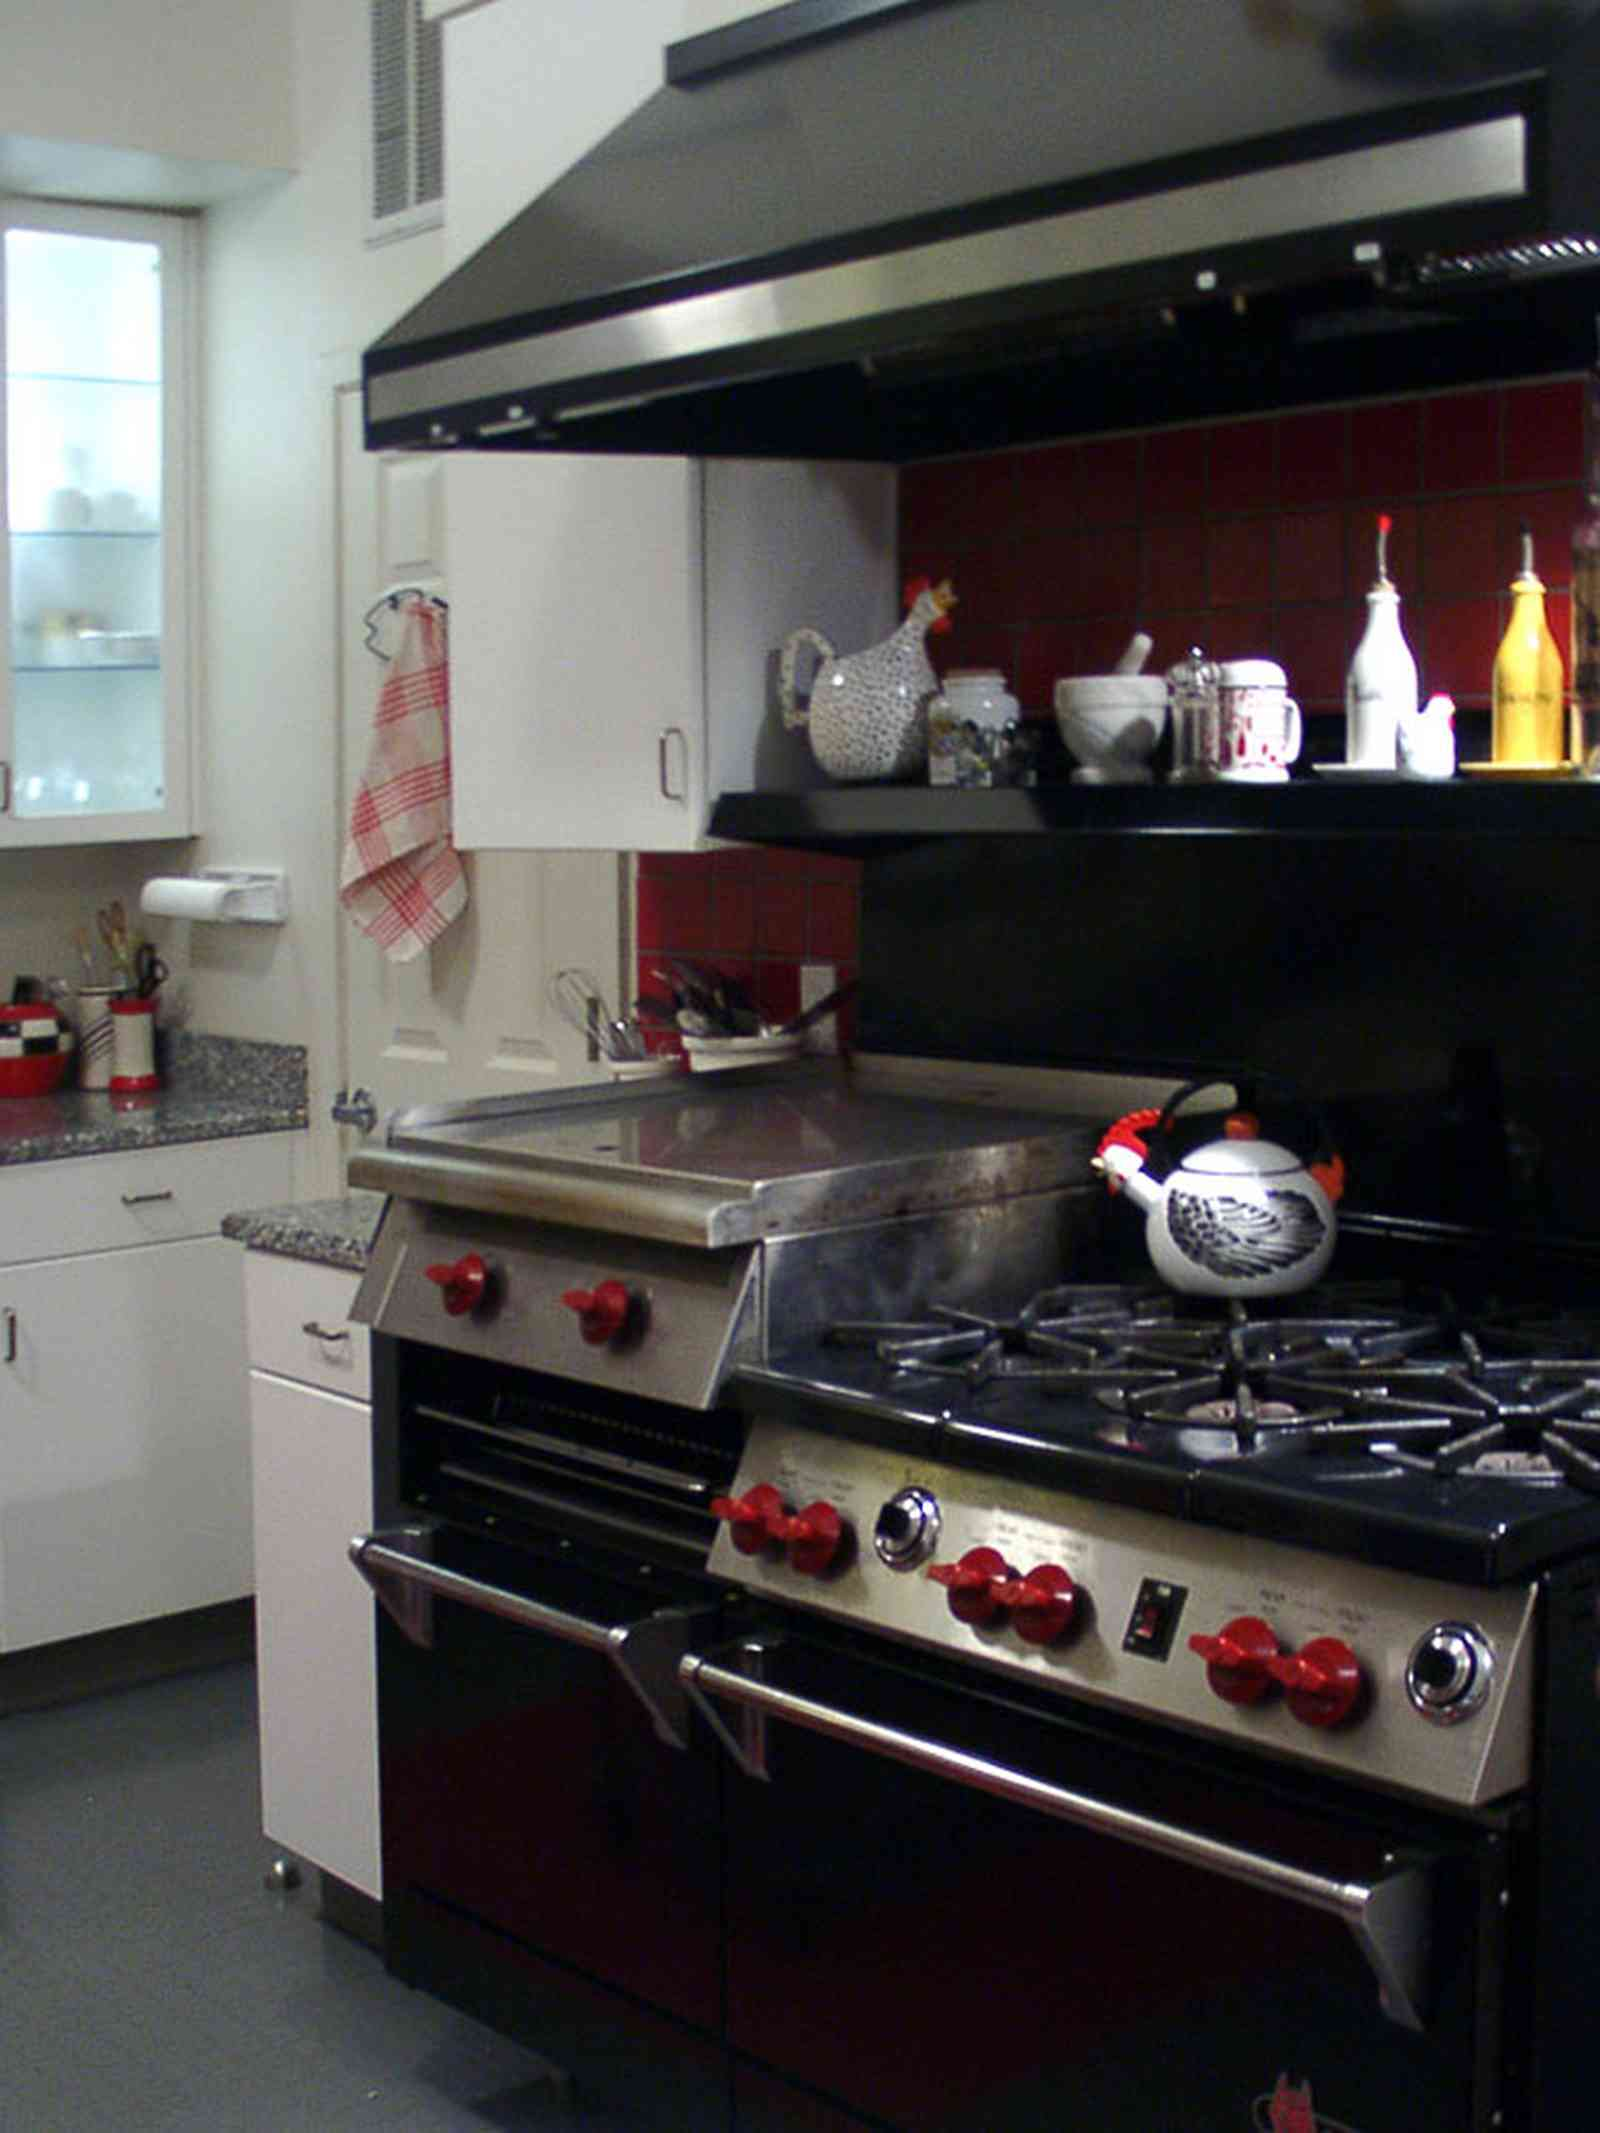 Pensacola:-Seville-Historic-District:-529-East-Government-Street_19.jpg:  restaurant stove, kitchen, convection oven